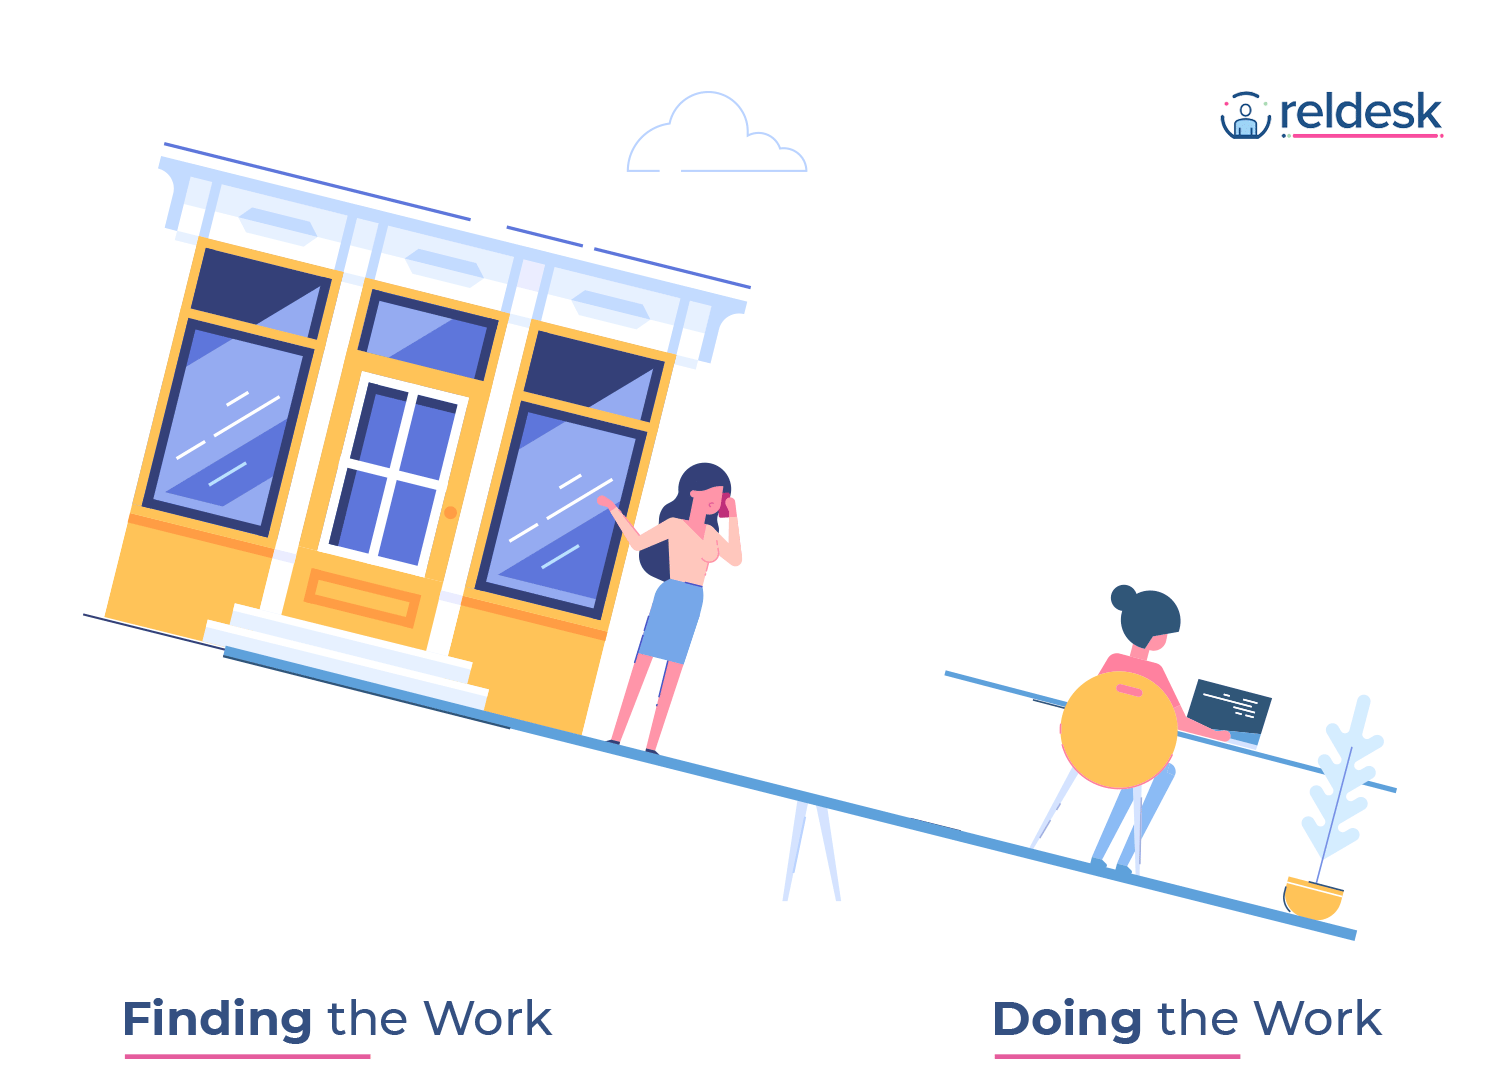 Finding and doing work balance